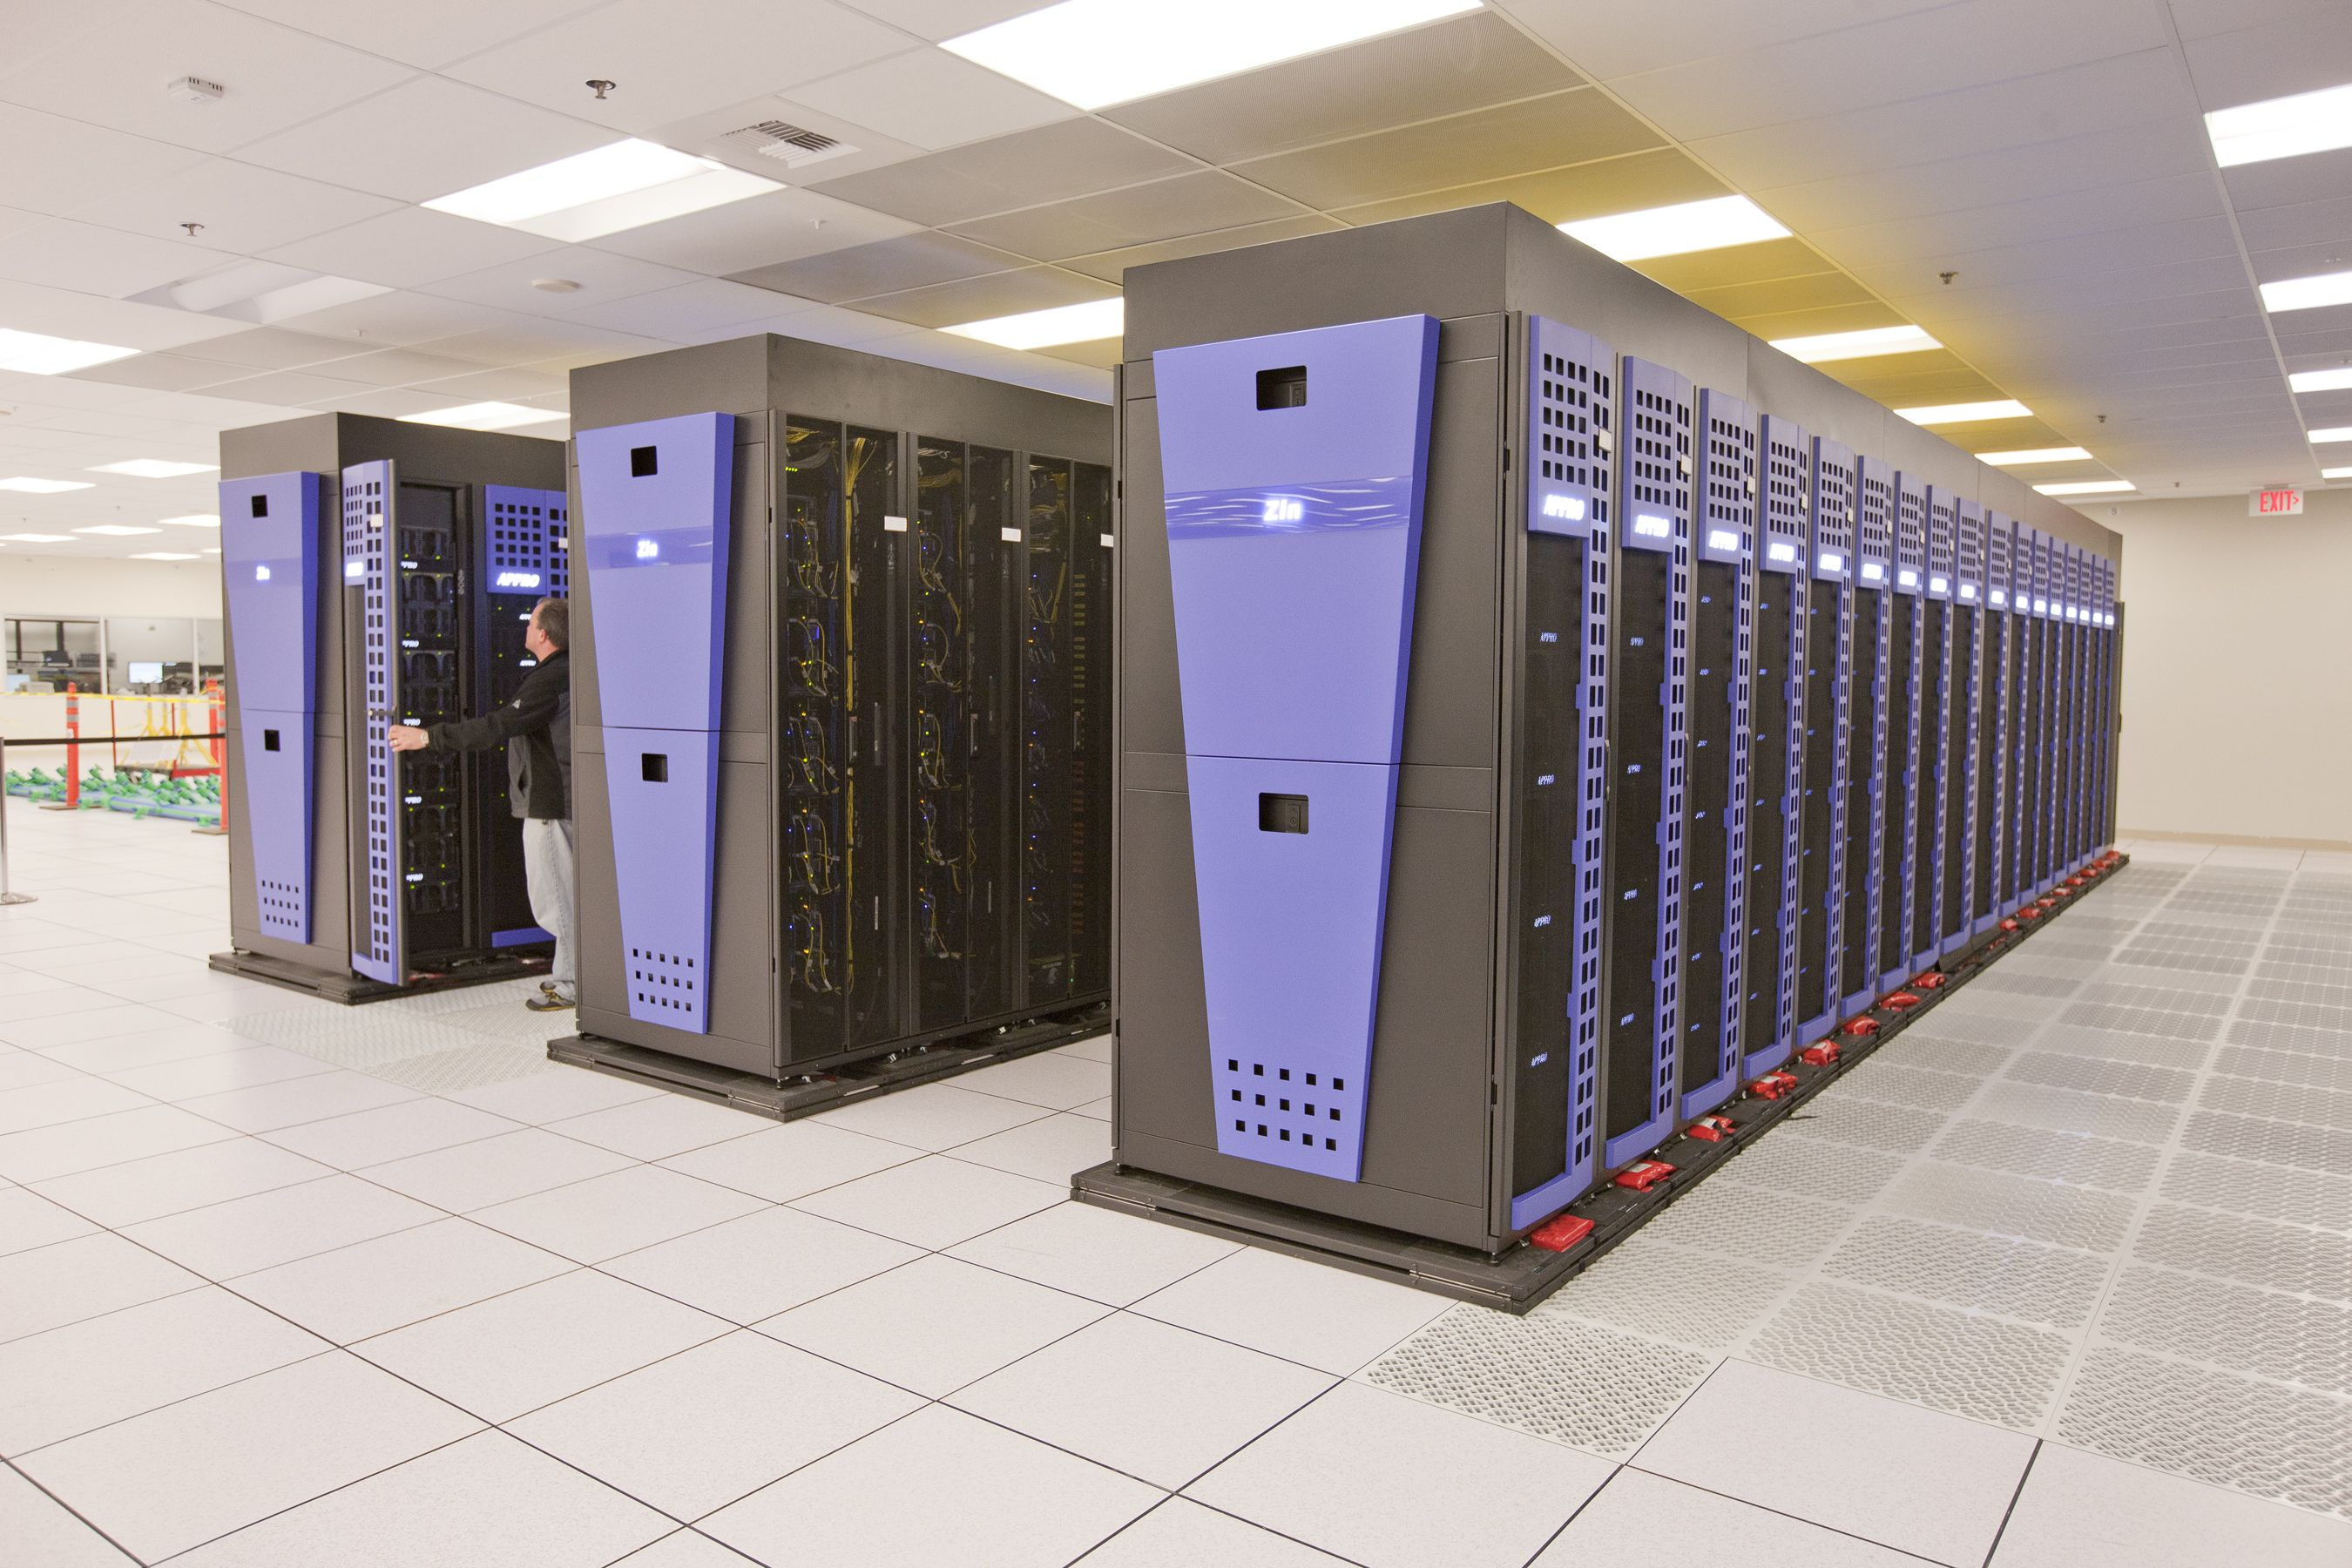 Zin is a 773.7 teraflop supercomputer located at Lawrence ...